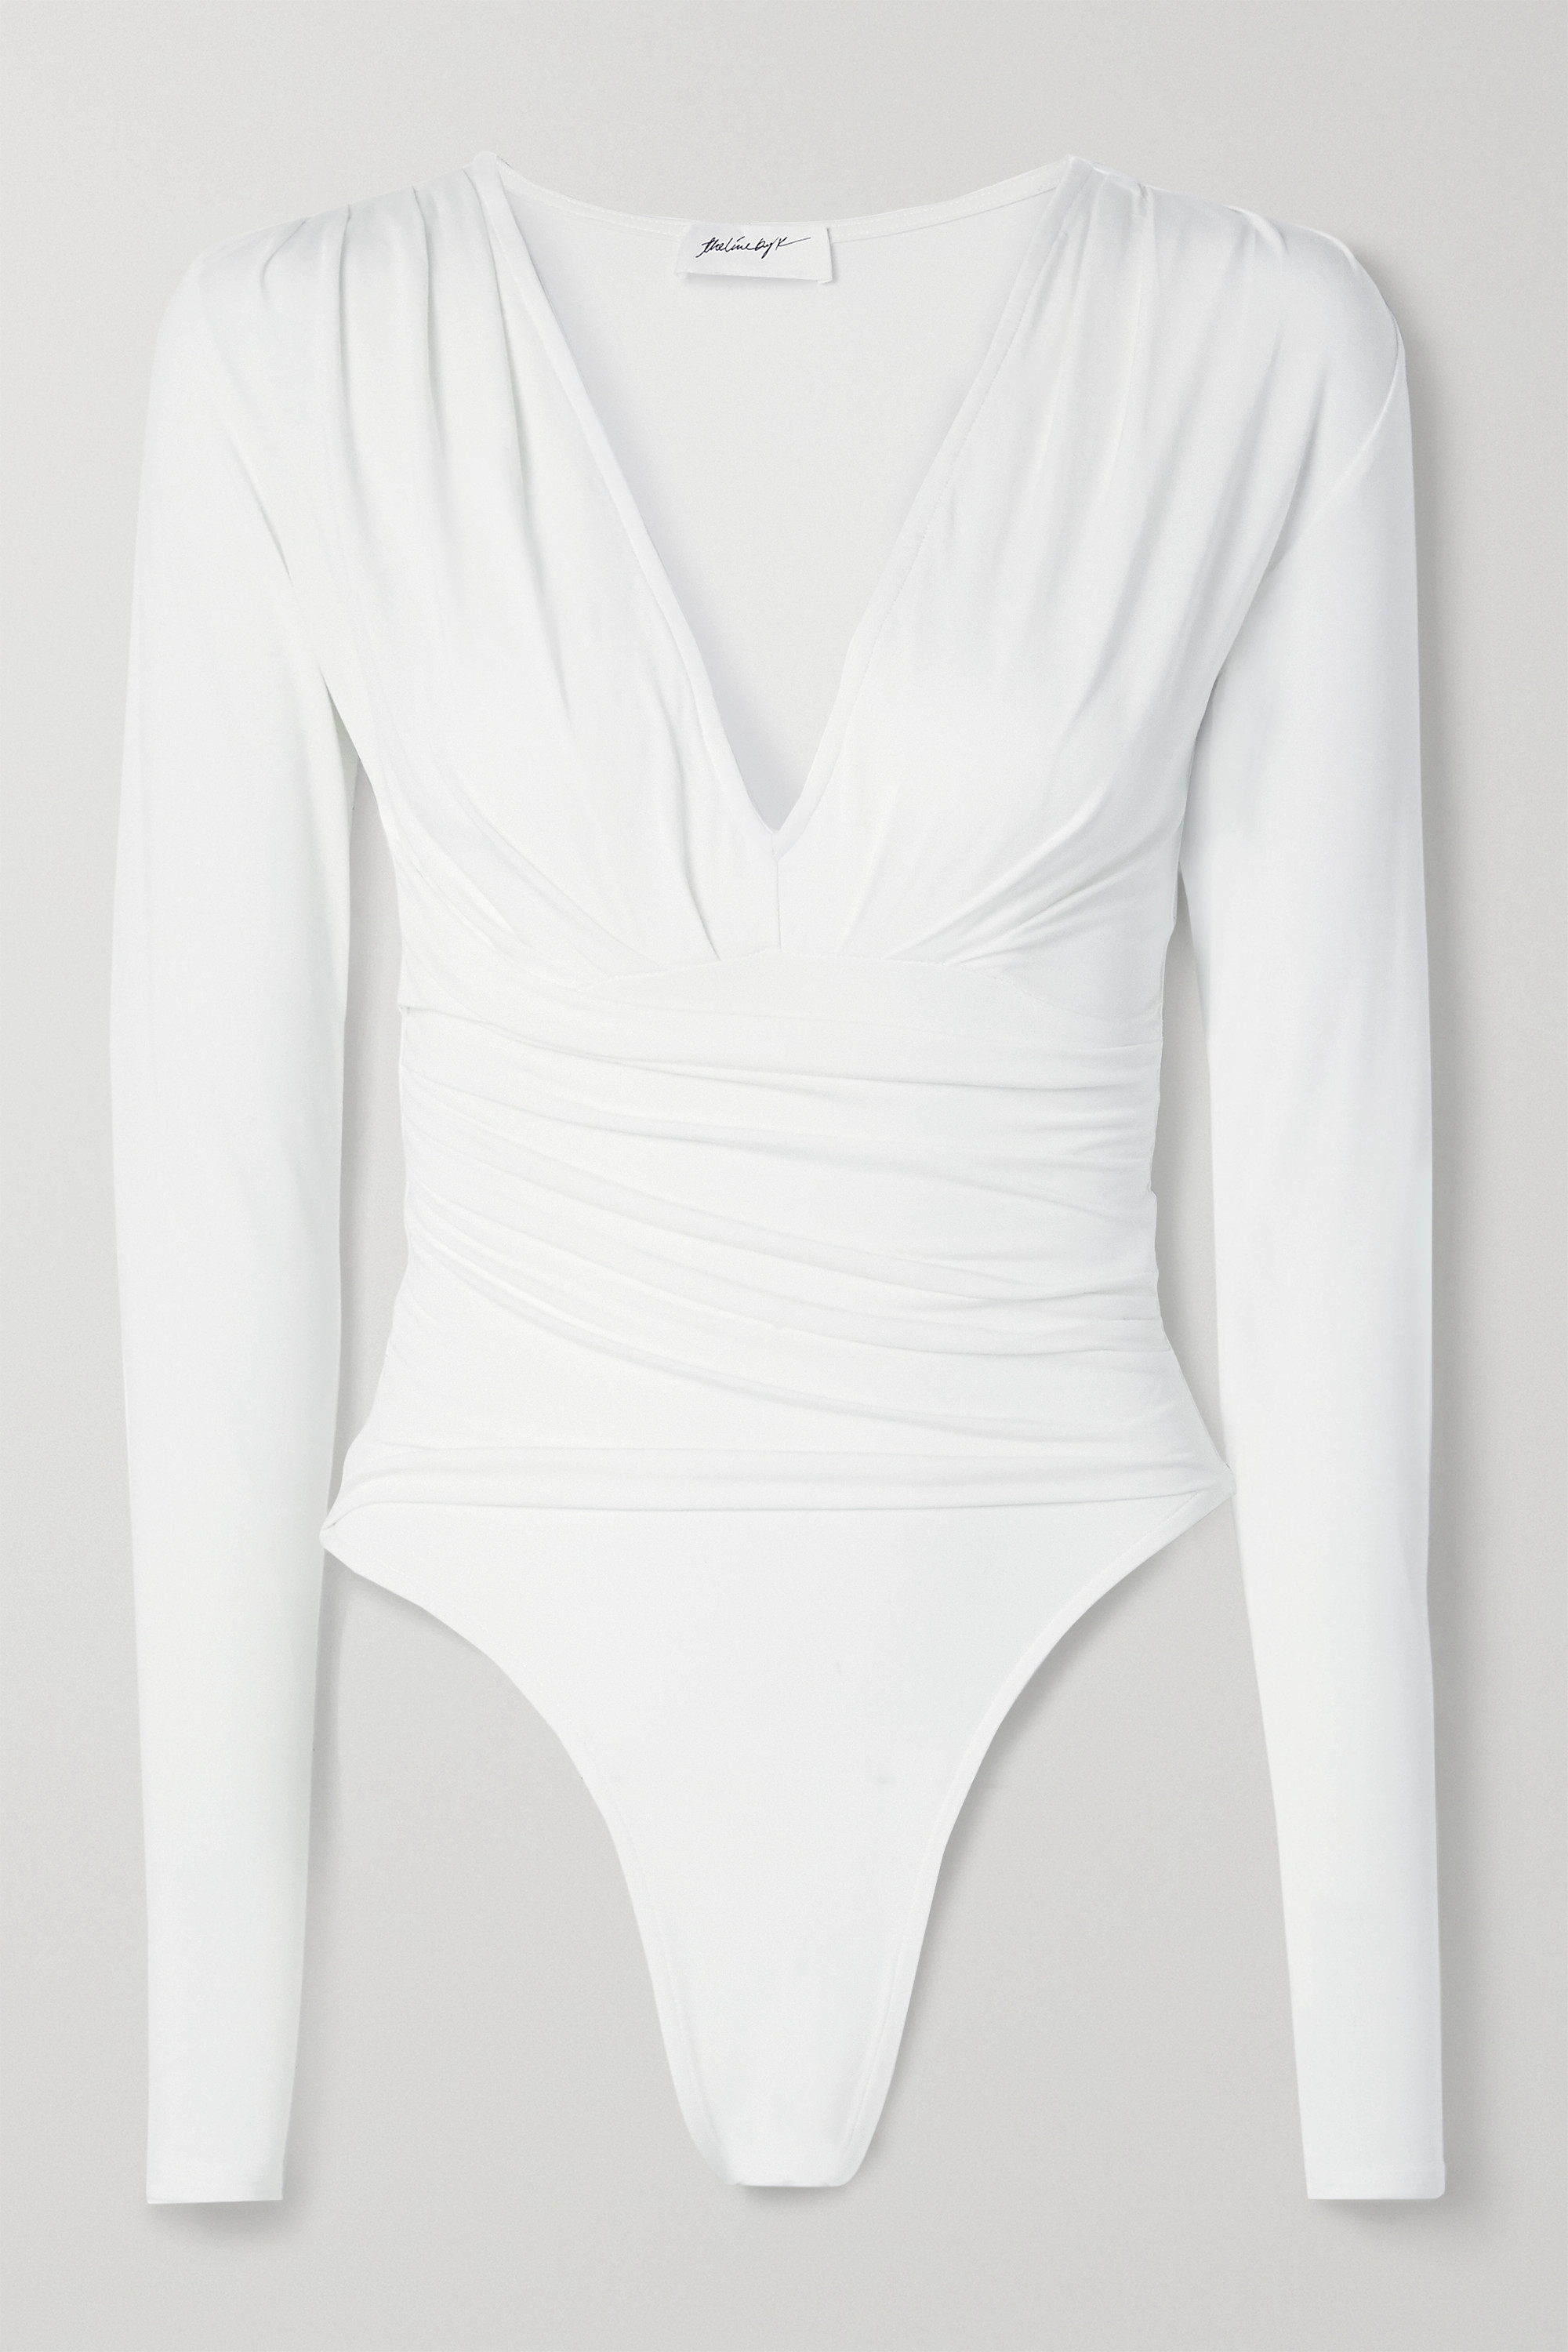 THE LINE BY K Isla ruched stretch-Micro Modal bodysuit